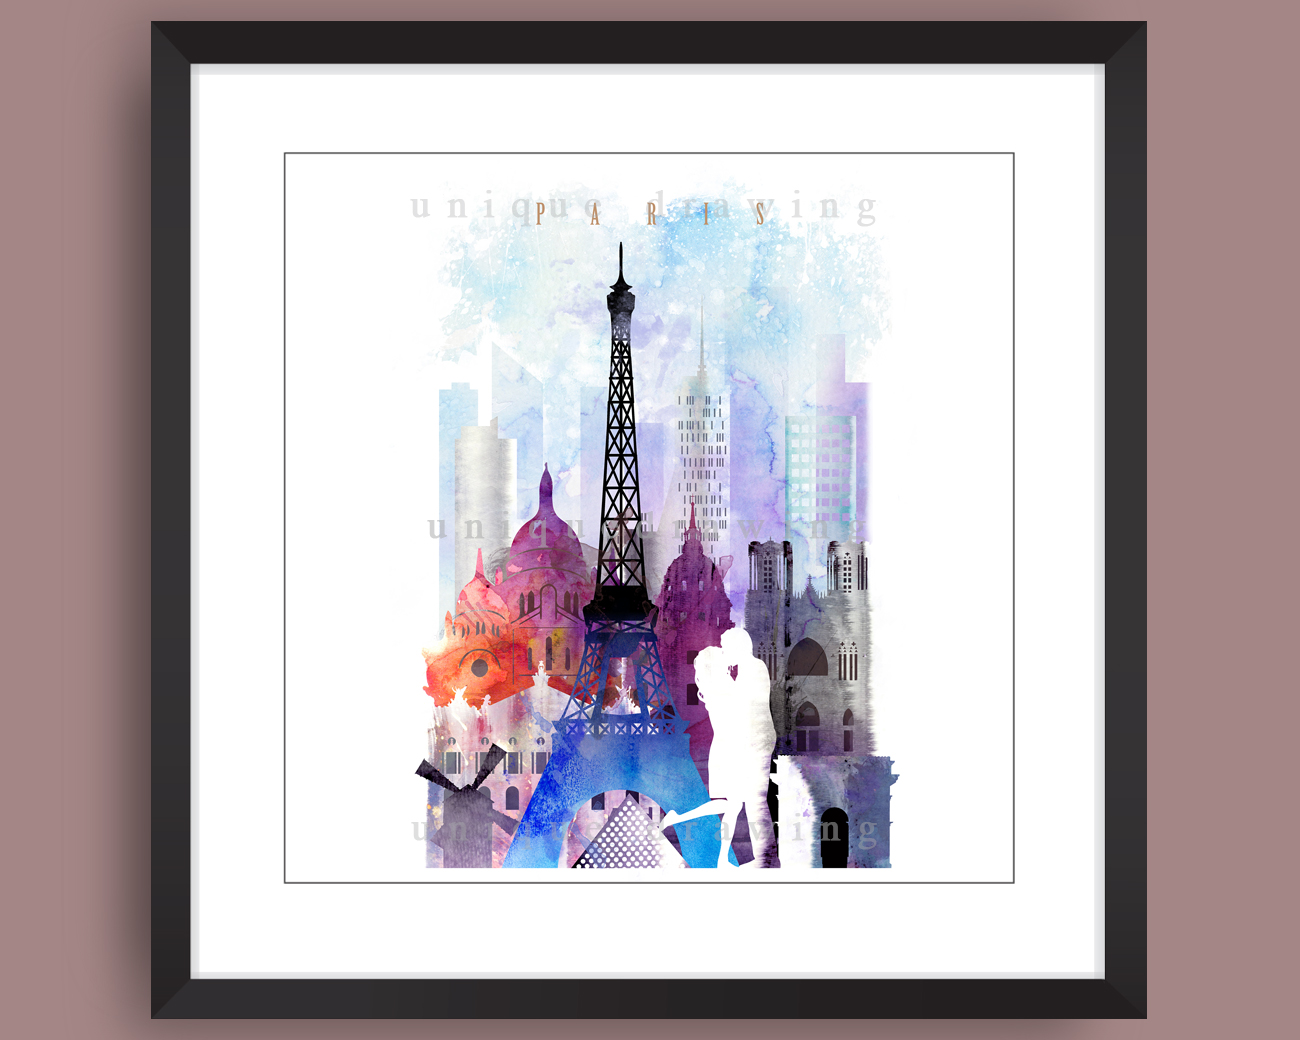 France Paris Paris Skyline Paris Landmarks Cityscape Poster Print Fine Art Wall Decor Painting No 4105